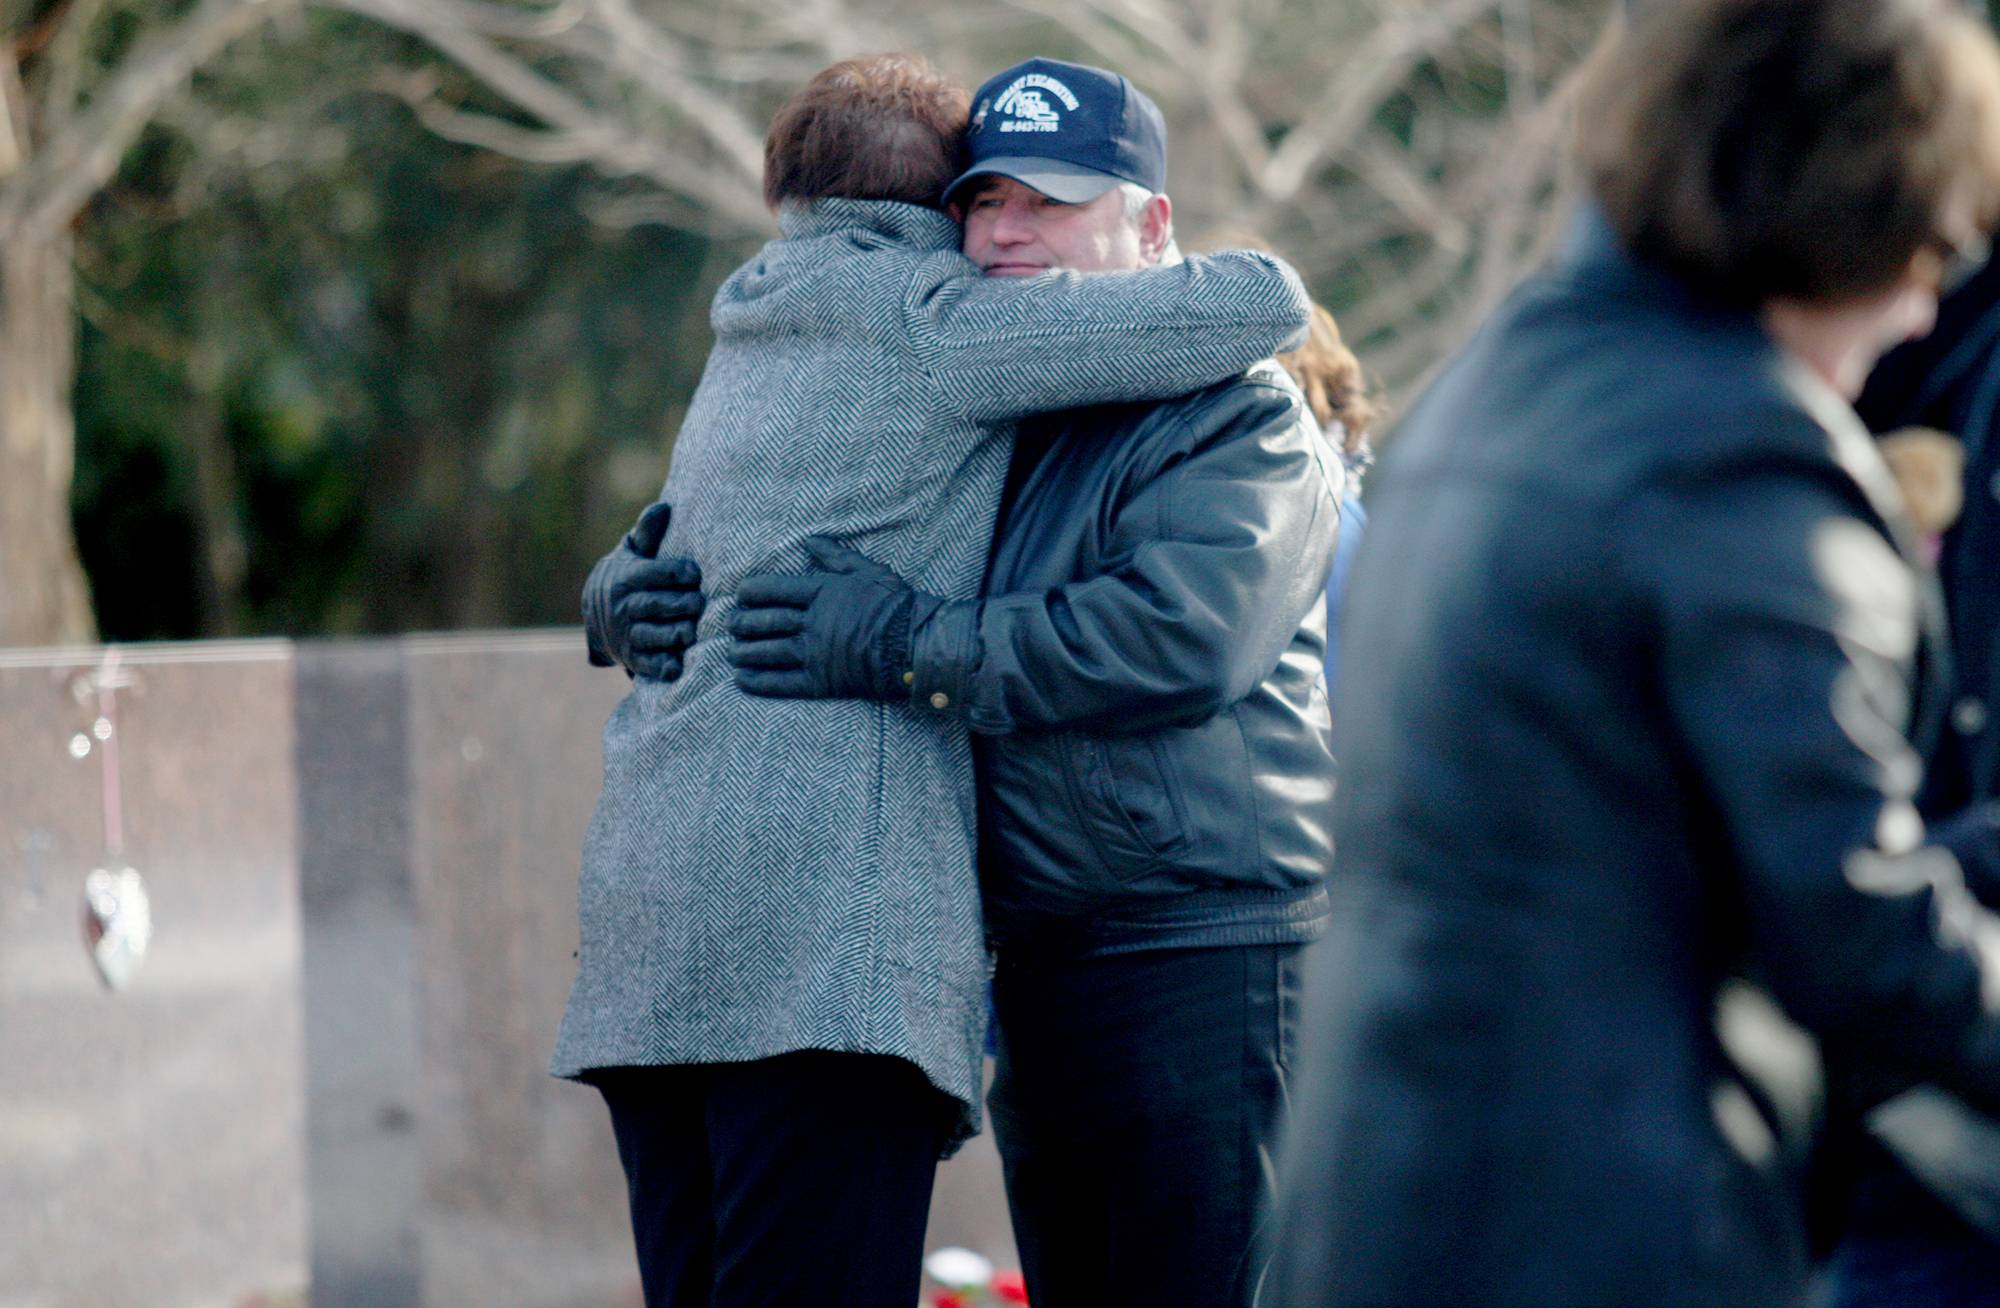 Larry Gehant, uncle of victim Julianna Gehant, hugs Northern Illinoins Associate Vice President of Student Affairs Kelly Wesener-Michael on Fridy during a moment of reflection on the sixth anniversary of the campus shooting.